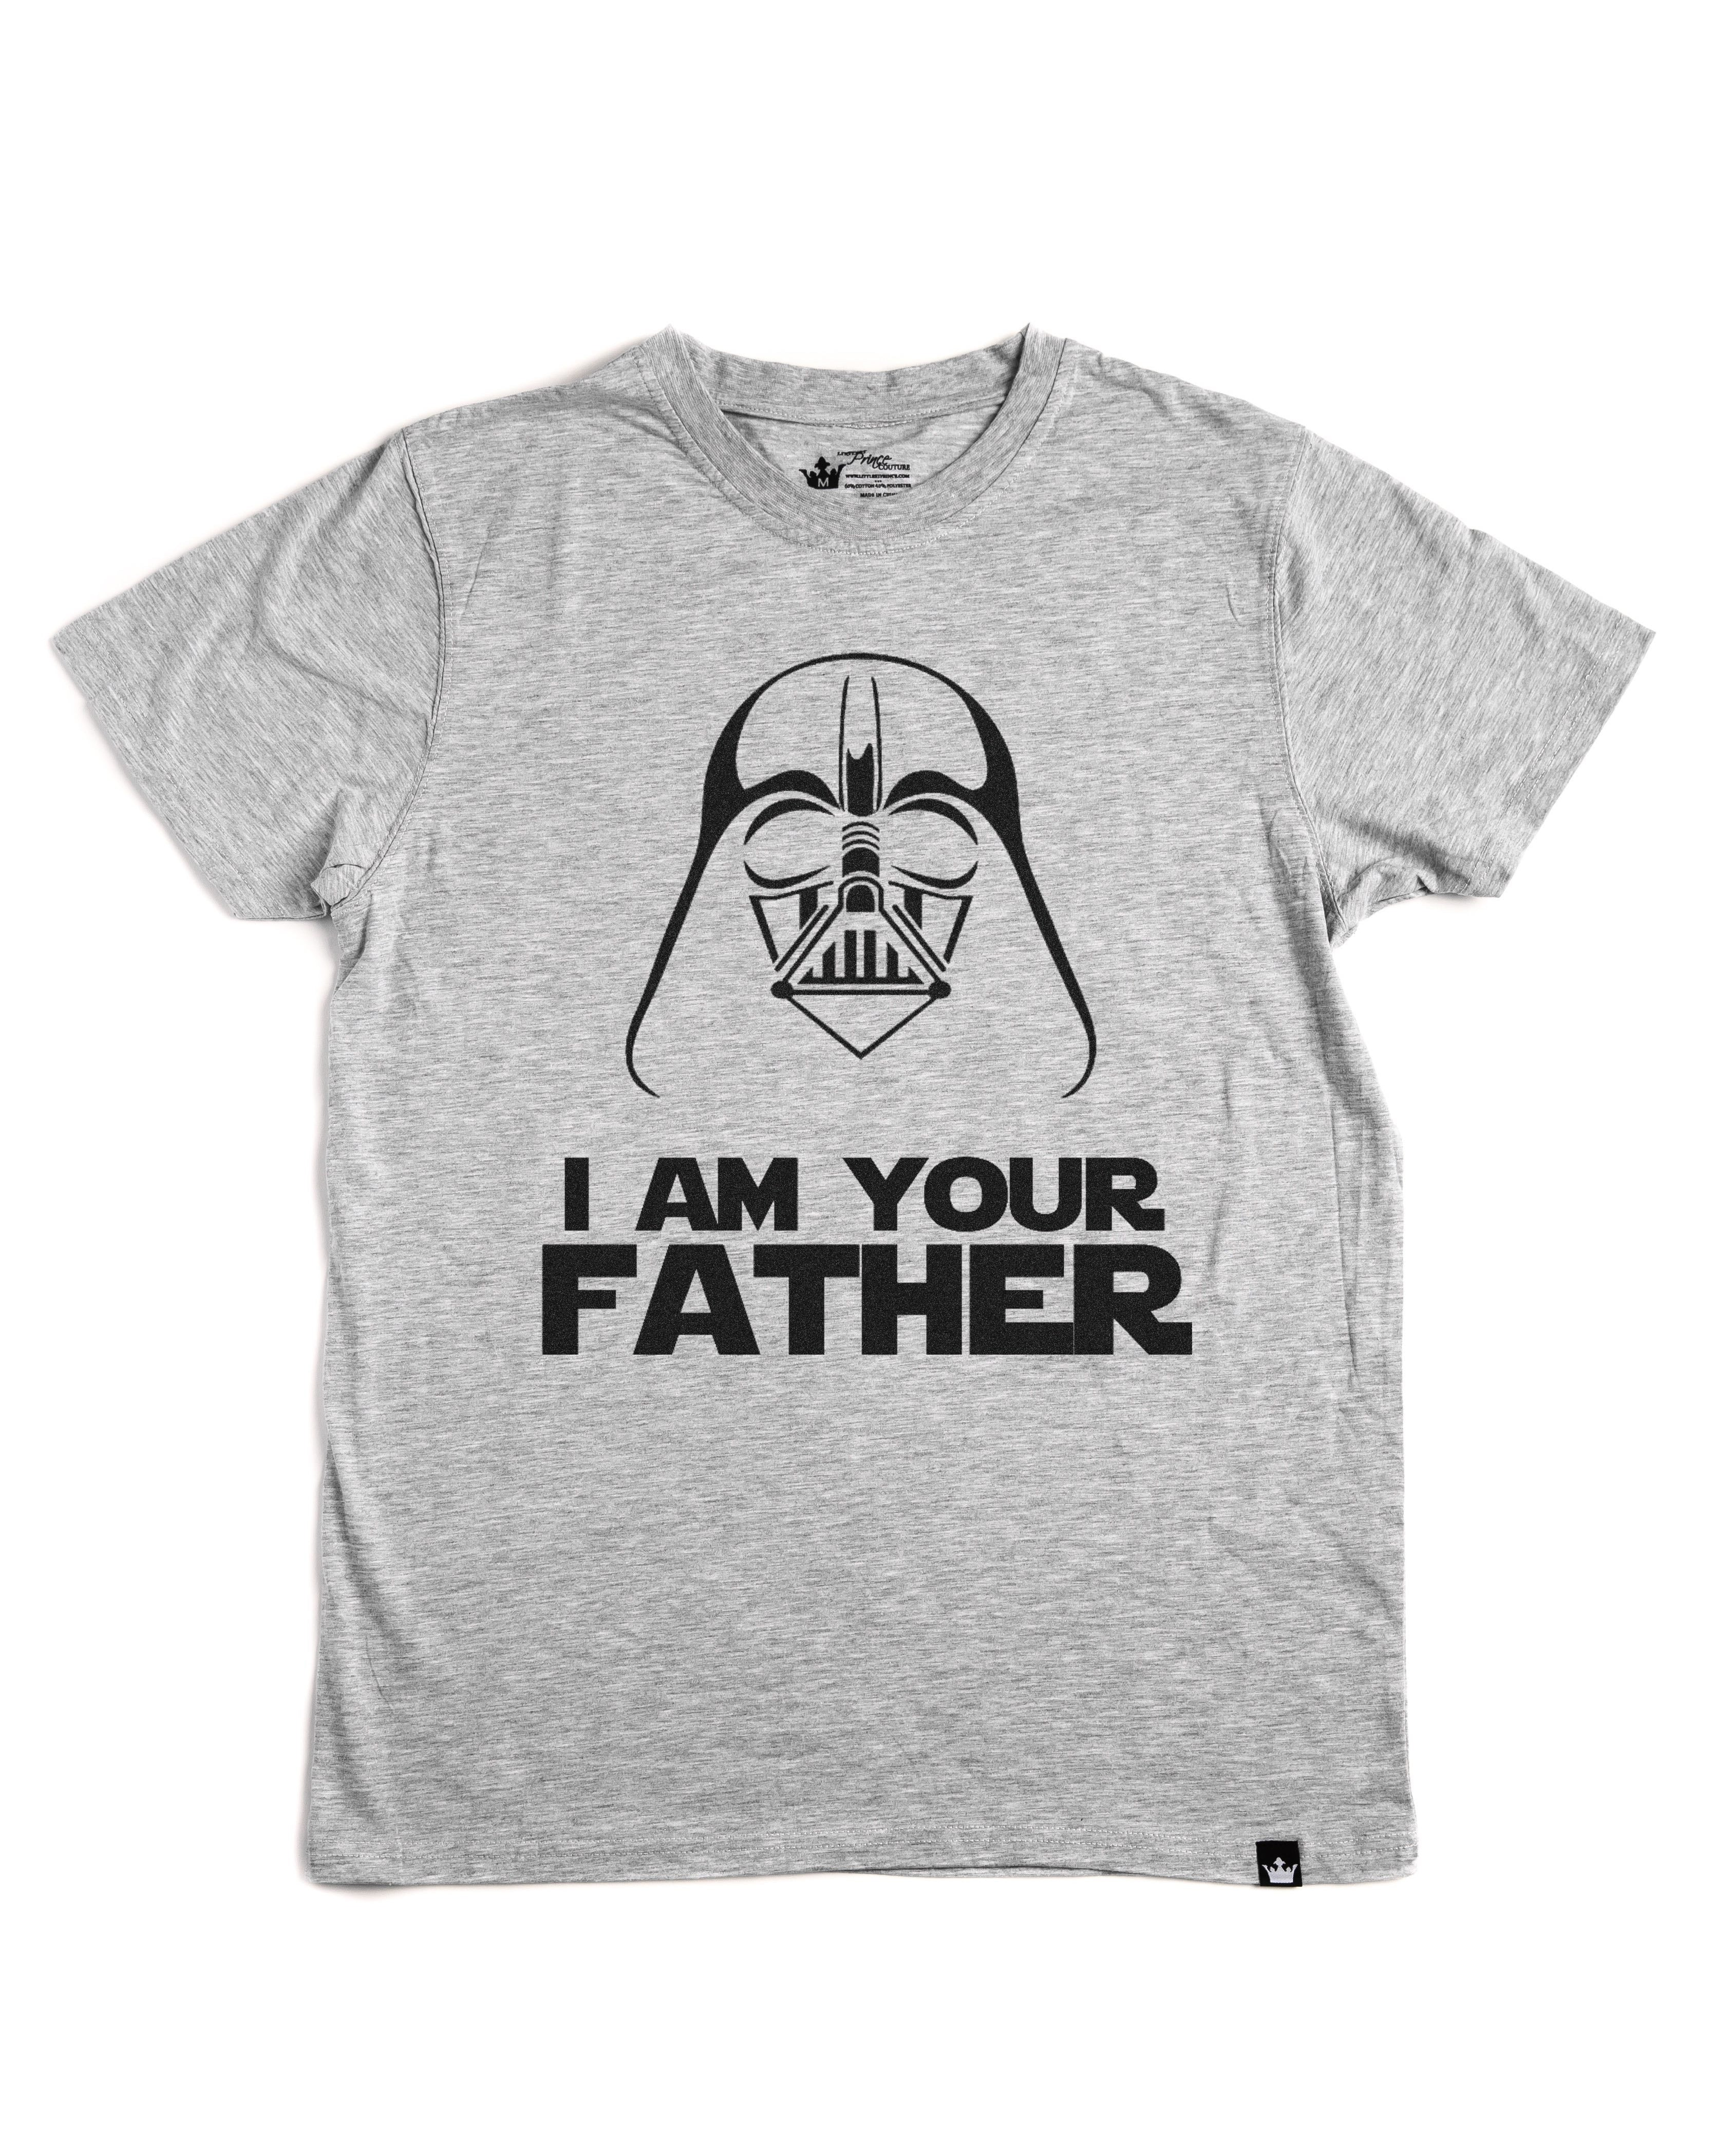 swm-iayf-gc-i-am-your-father-gray-shirt.jpg